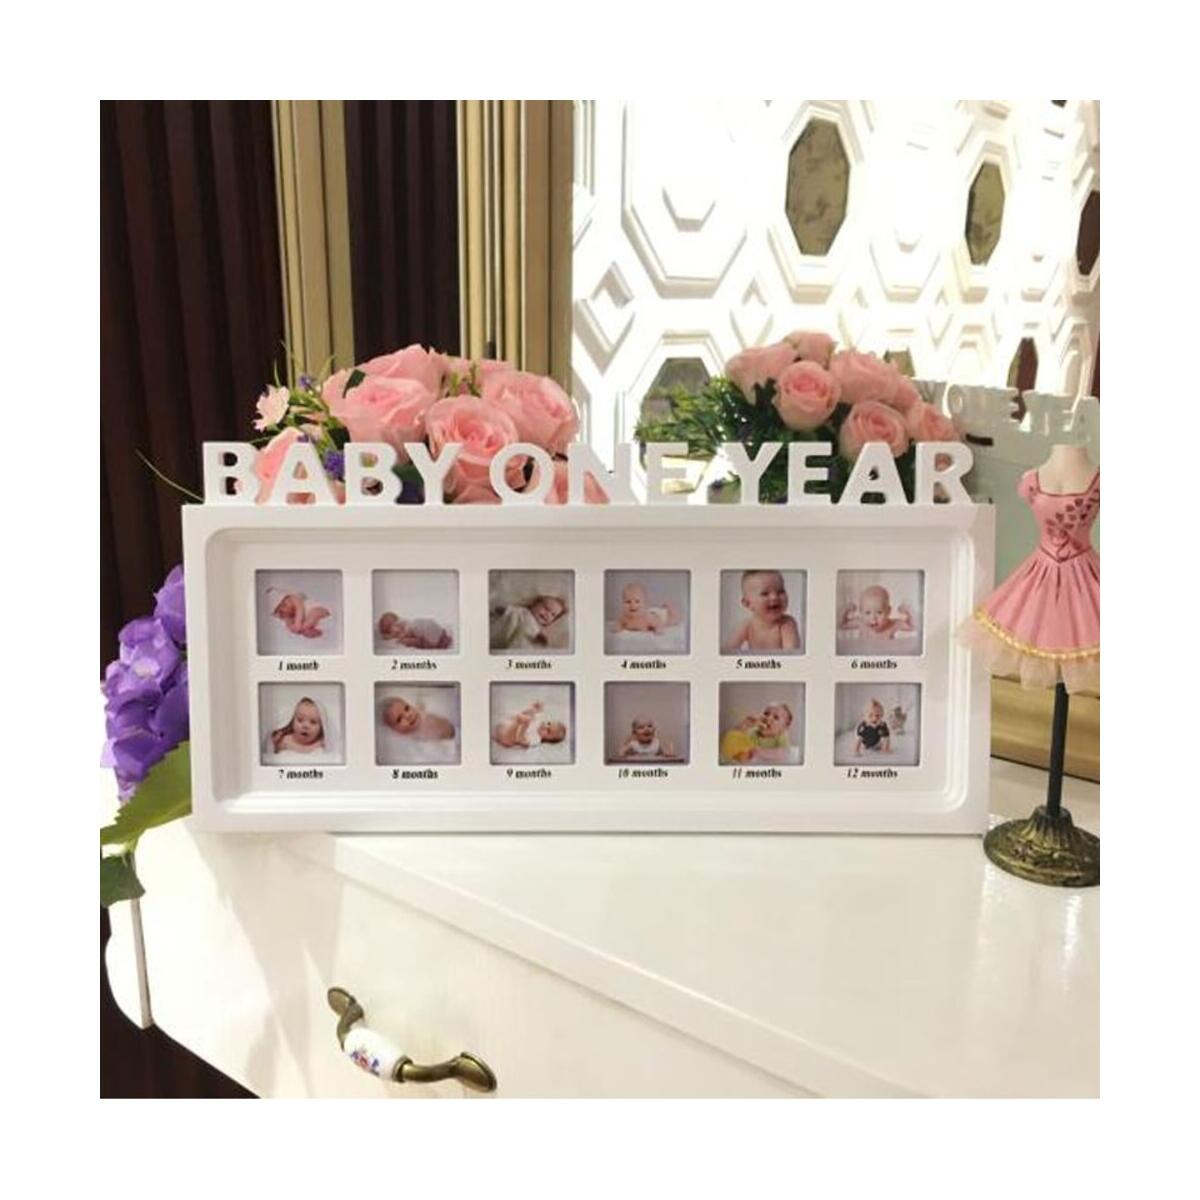 My First Year Frame Baby Picture Keepsake Frame for Photo Memories Newborn Baby Shower Frame